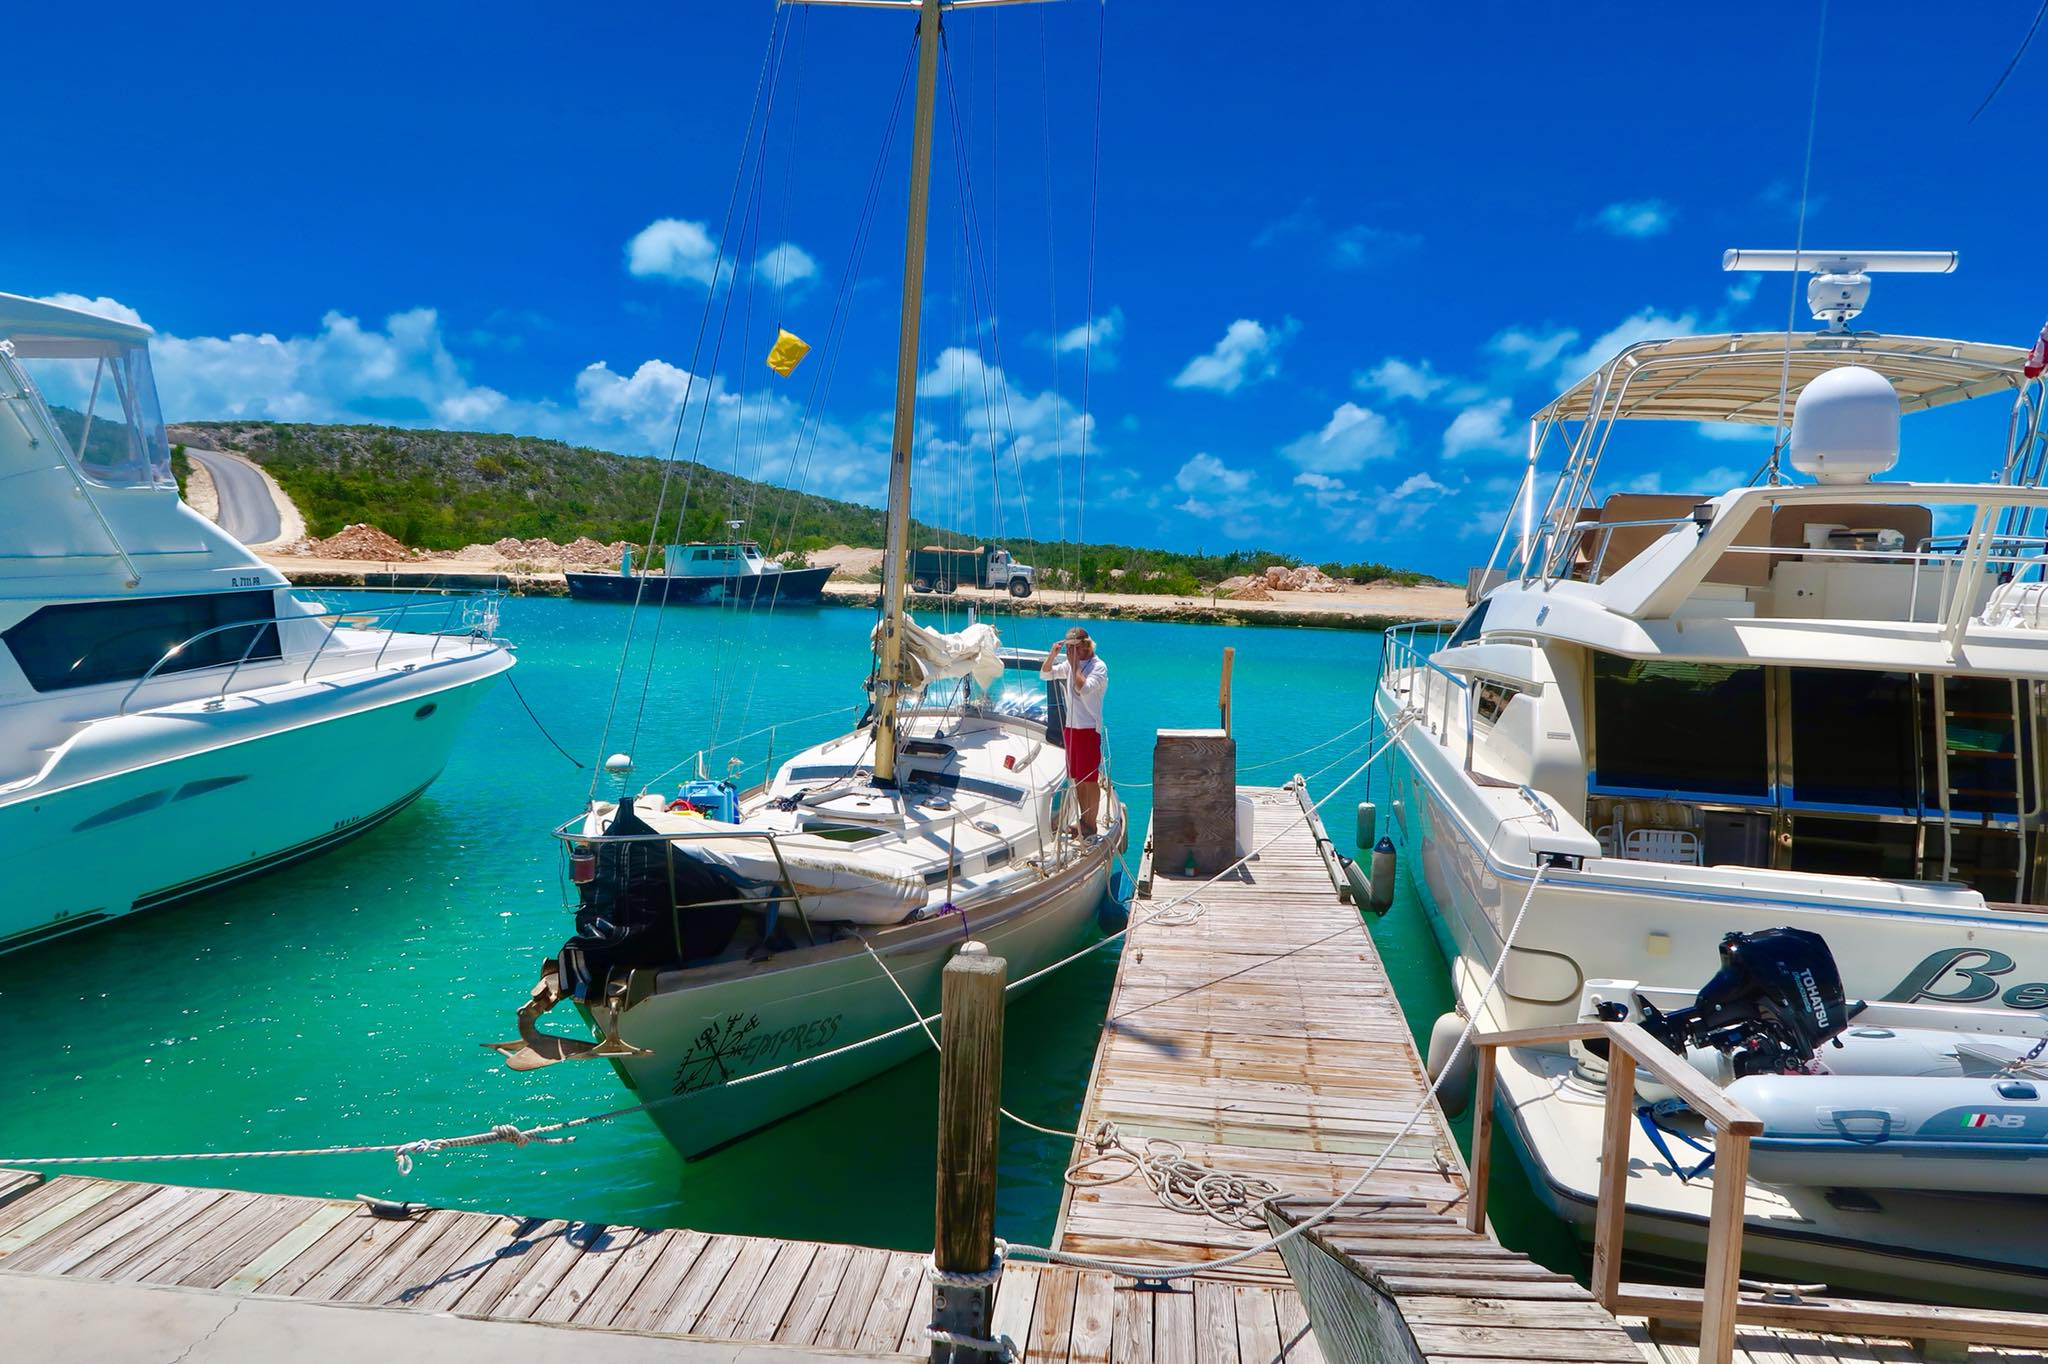 Sailing Life Day 44: Our Day in Provo, Turks & Caicos : Cleared In Customs & Immigration, New Passport Stamp for Captain Ahab, Steak for Dinner and Issues Fixed!